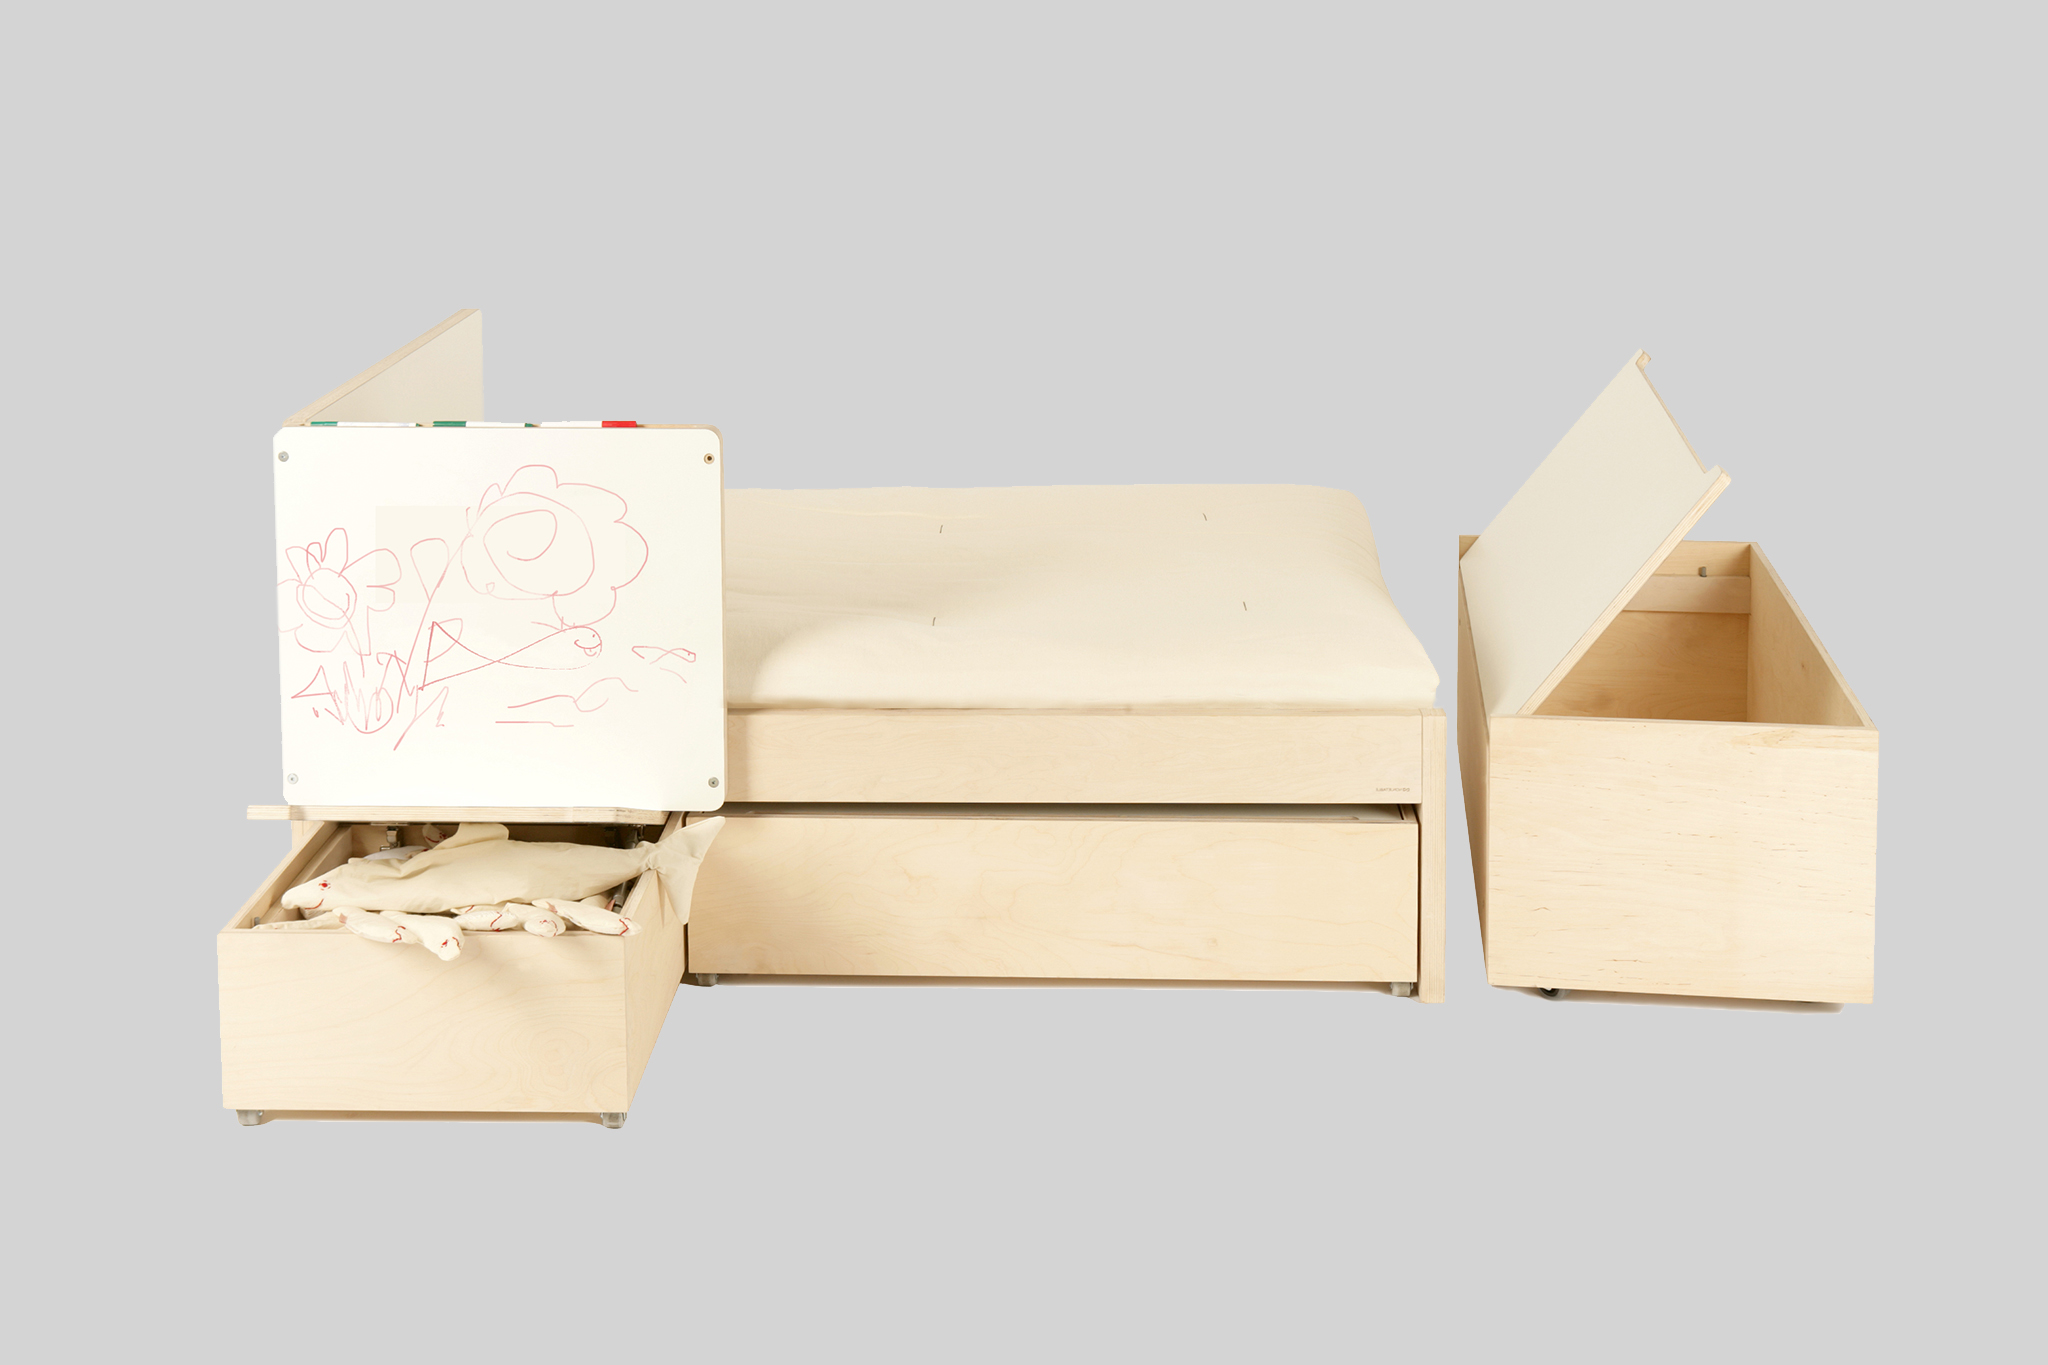 Nonjetable-Modular-Junior-Bed-Birch-Plywood-03